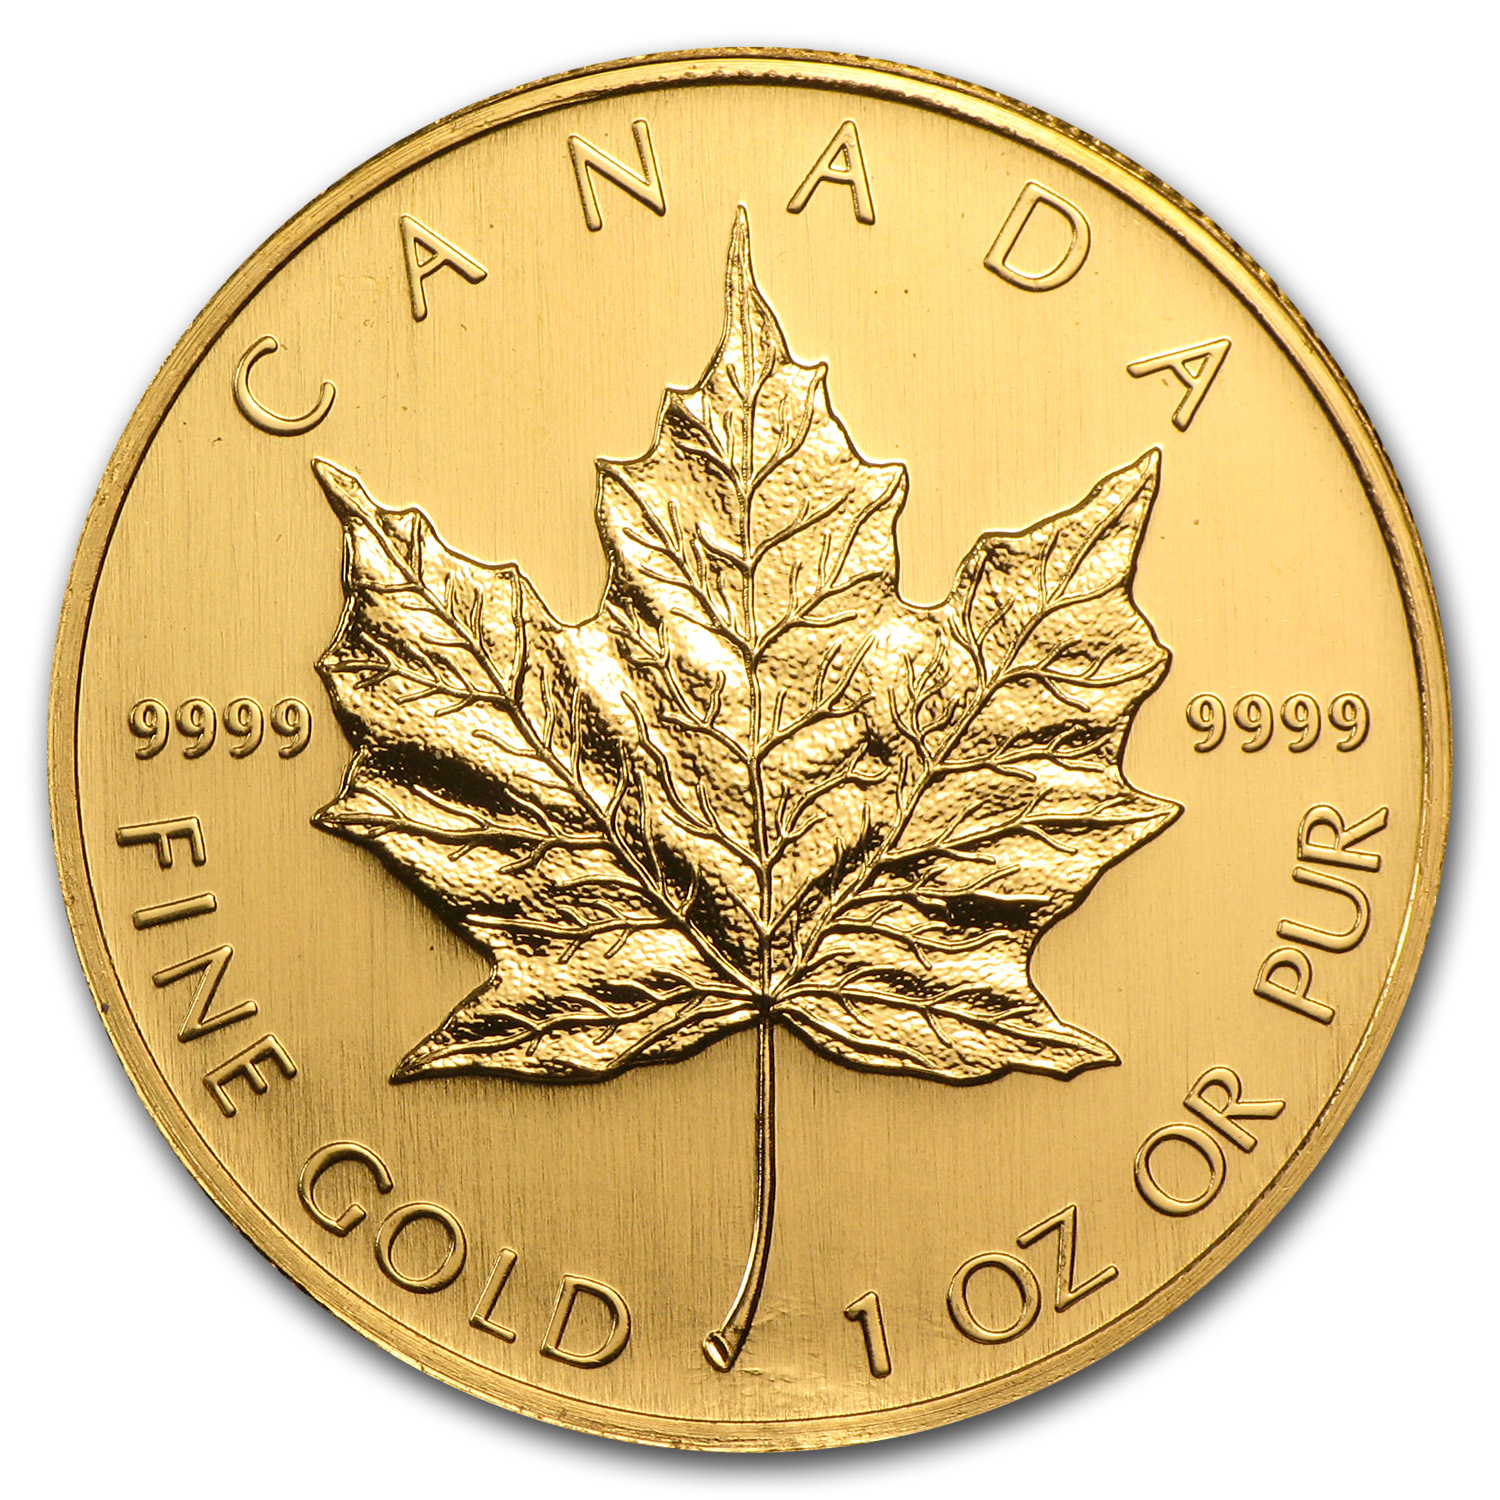 2006 1 oz Gold Canadian Maple Leaf BU